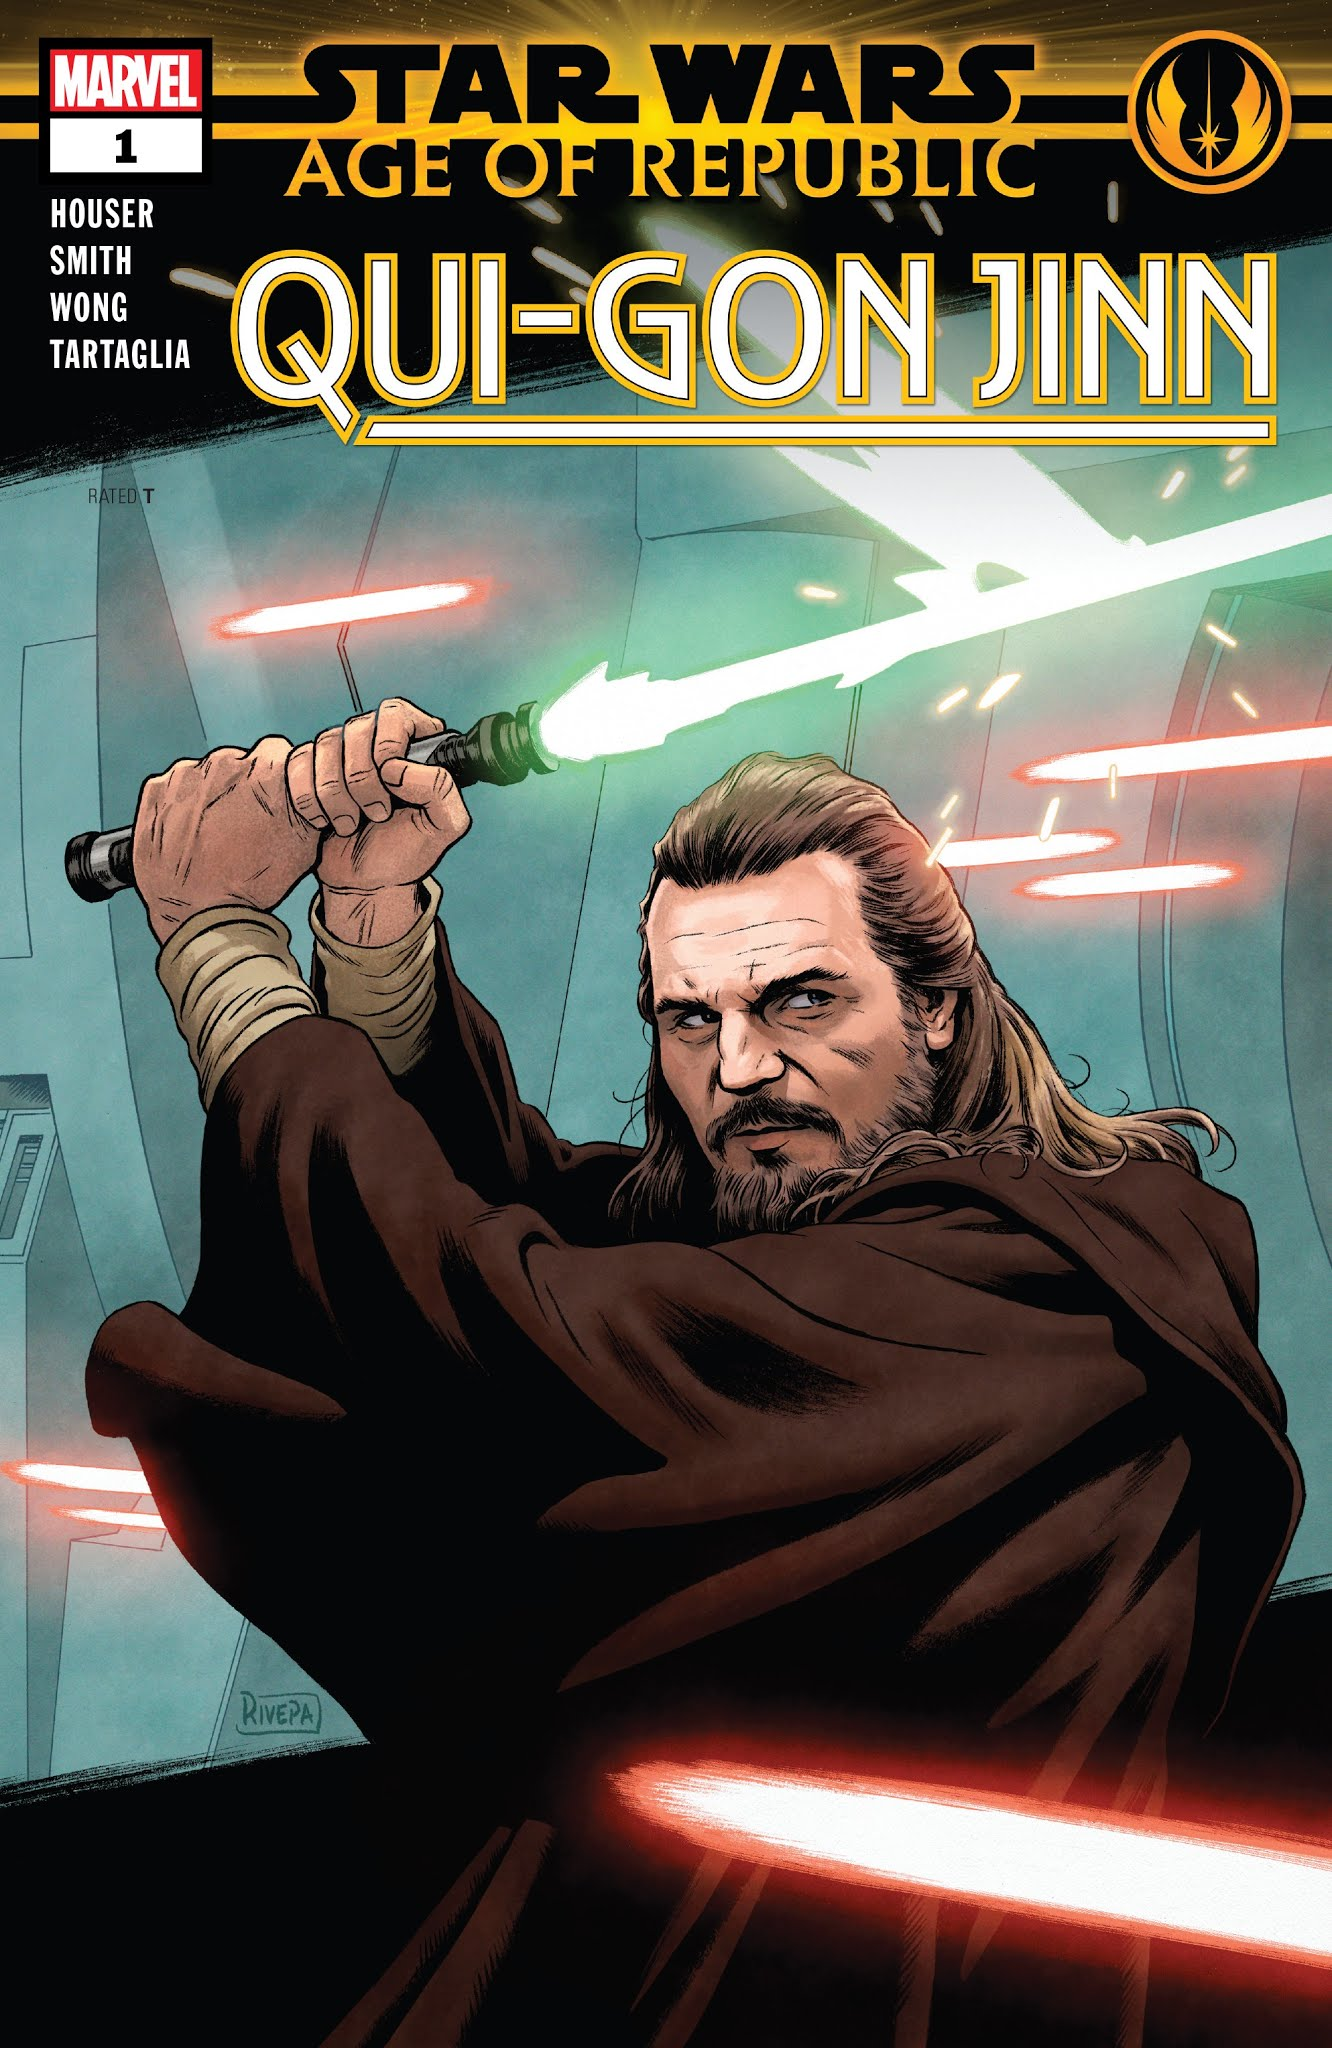 Star Wars: Age of Republic: Qui-Gon Jinn Full Page 1